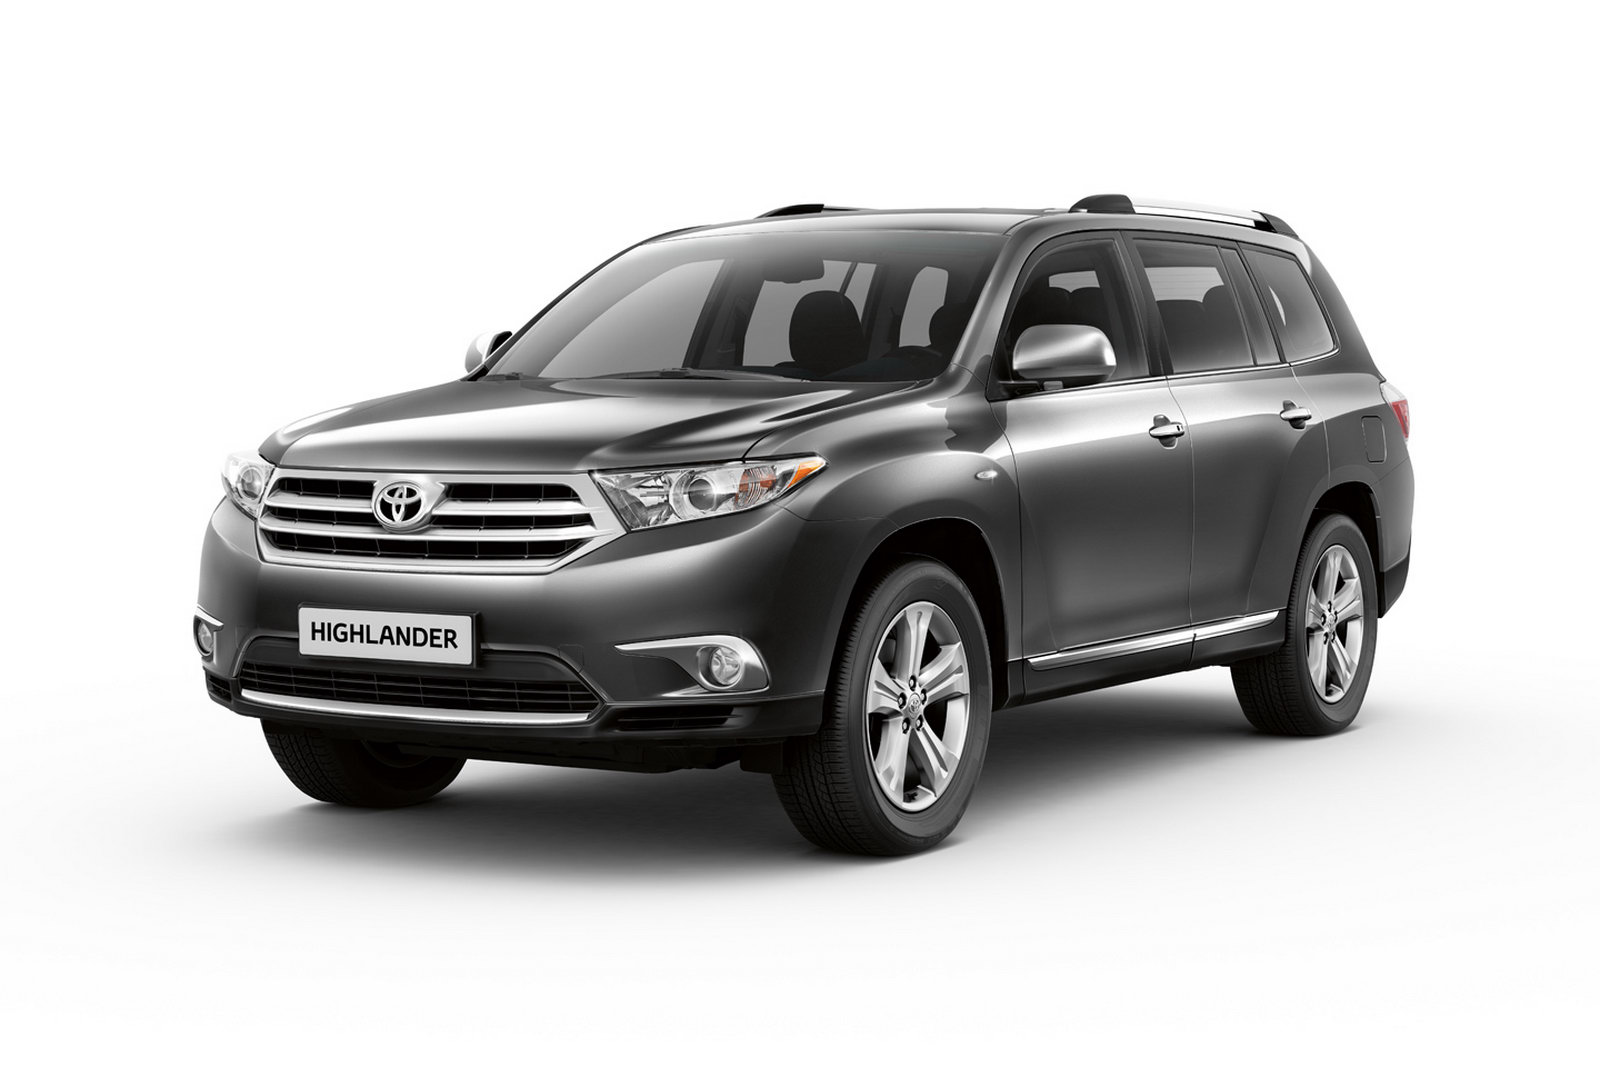 Toyota kluger 2012 photo - 1